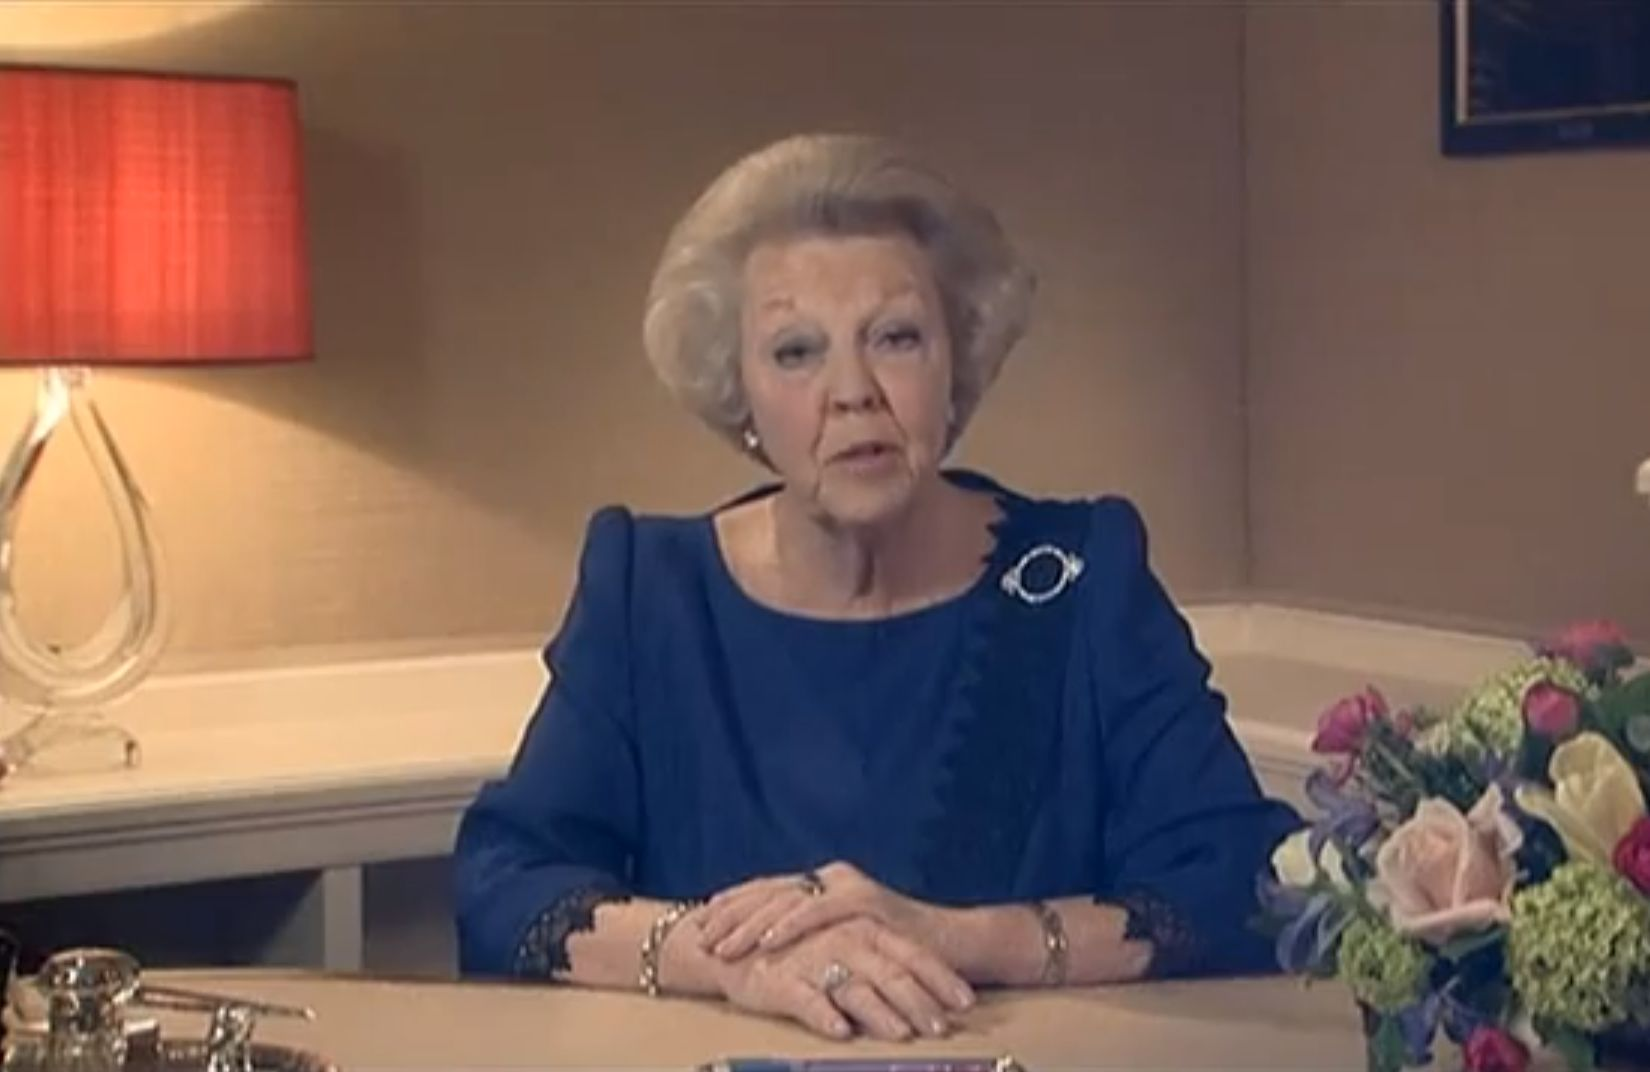 Queen Beatrix announced her abdication of the Dutch throne on Jan. 28.